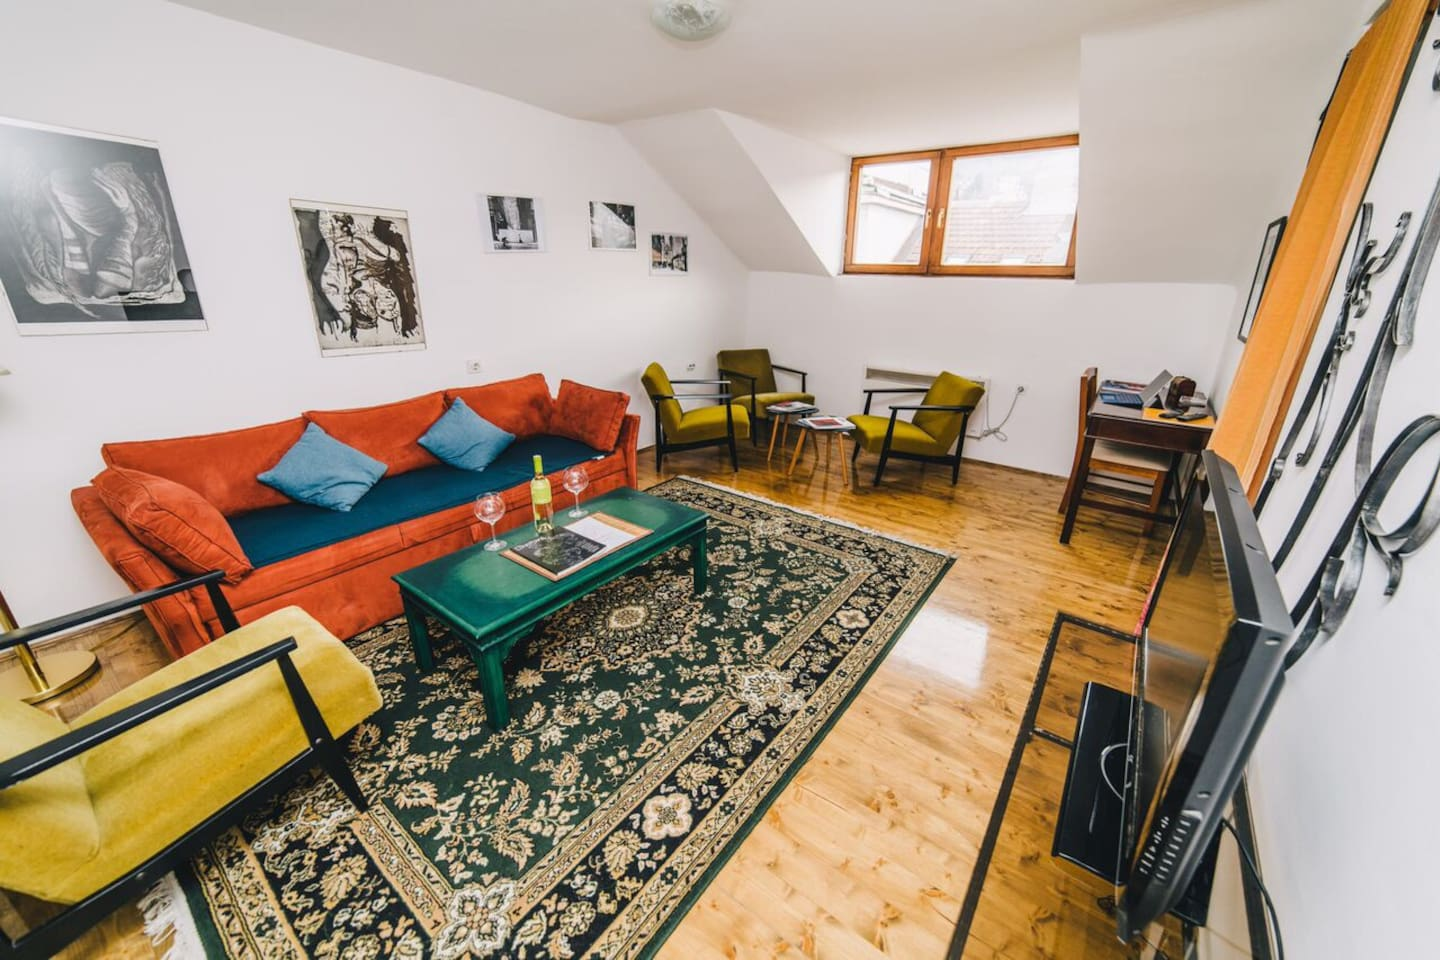 Local materials and attention to details are guarantee for the best stay in Sarajevo